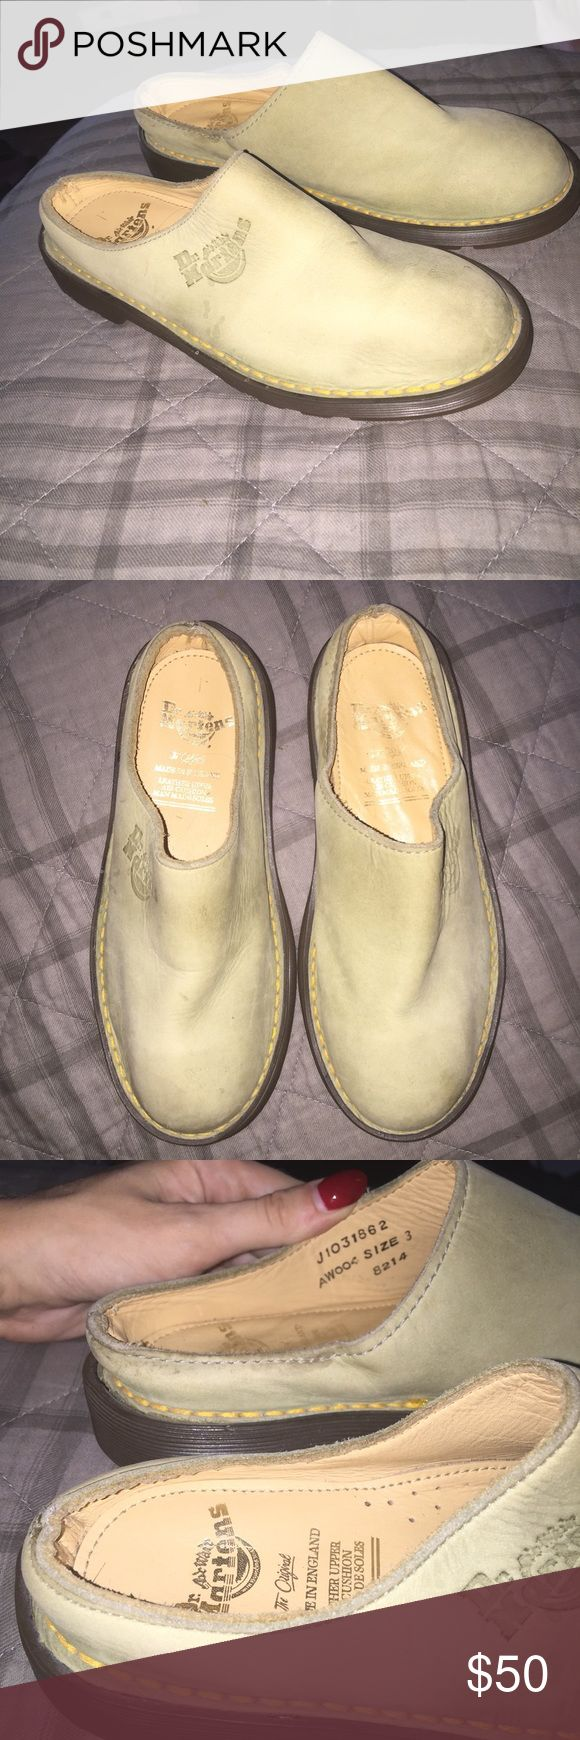 Olive green Dr Marten slip ons shoes very cute and vintage Doc Martens go cute with any casual 90s outfit Dr. Martens Shoes